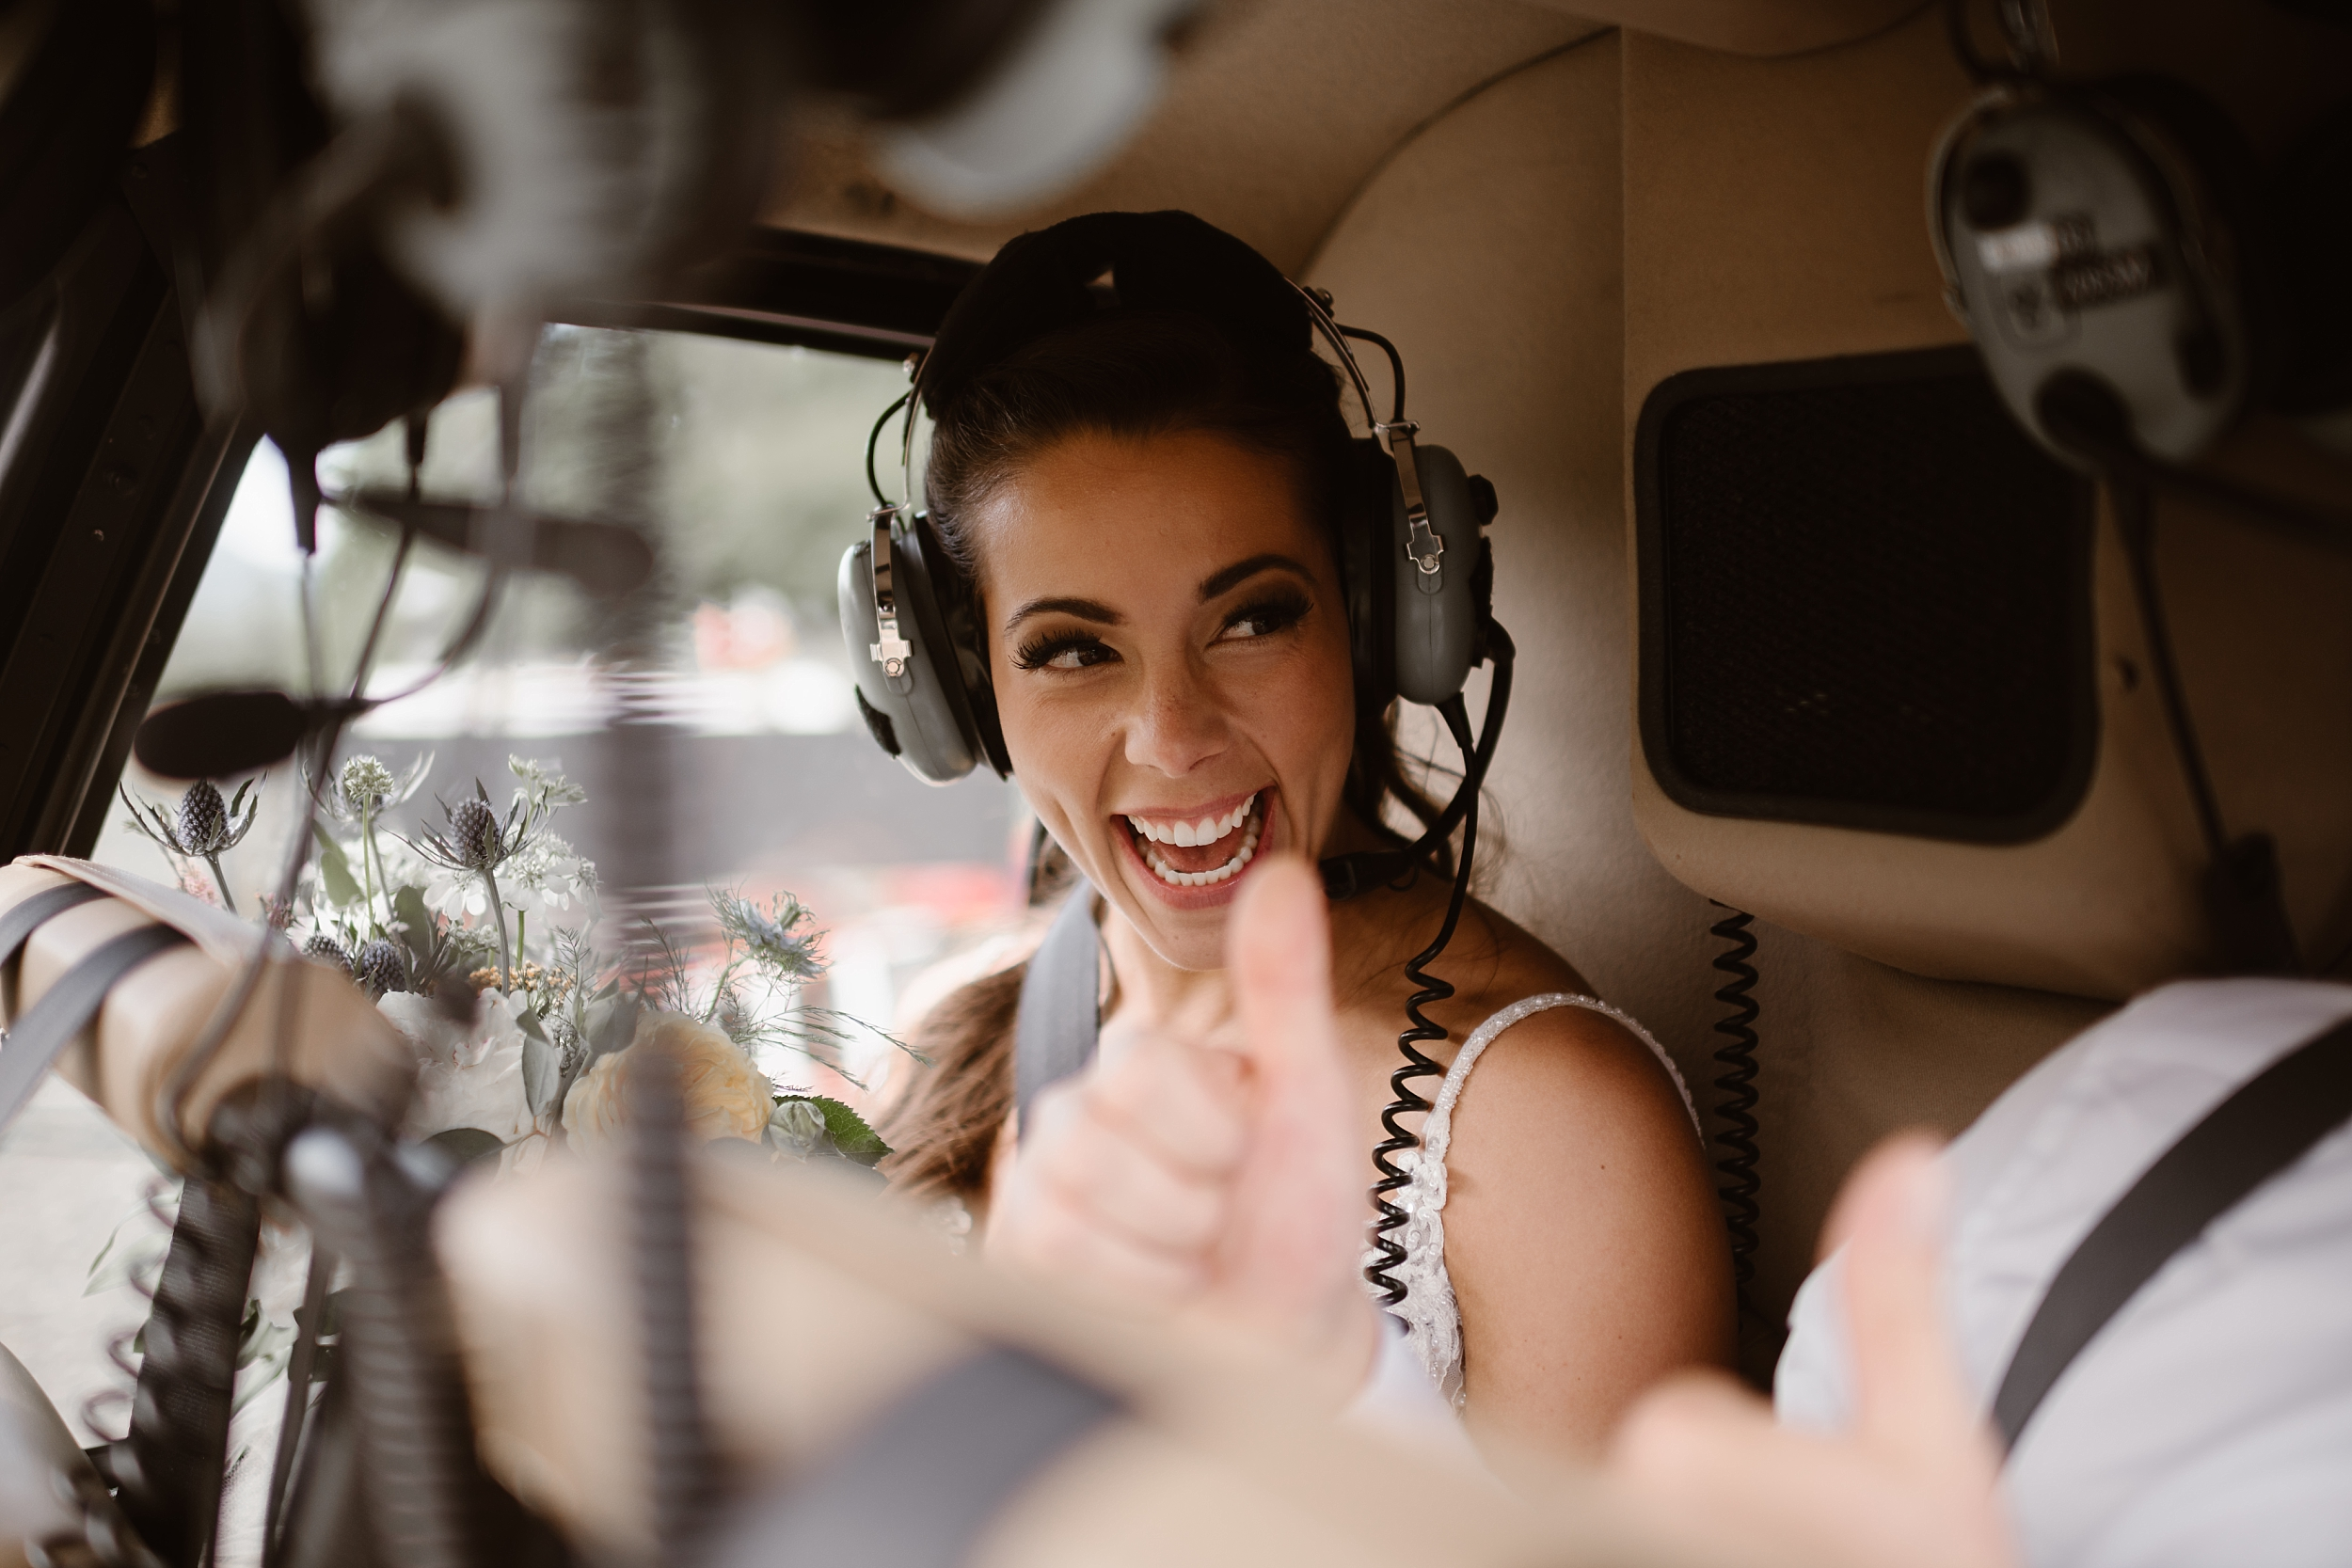 Jordyn smiles widely as she sits in the back of the helicopter. In the corner of the image, captured by elopement photographer Adventure Instead, Connor gives Jordyn a thumbs-up as they take off to their next destination on their helicopter elopement.